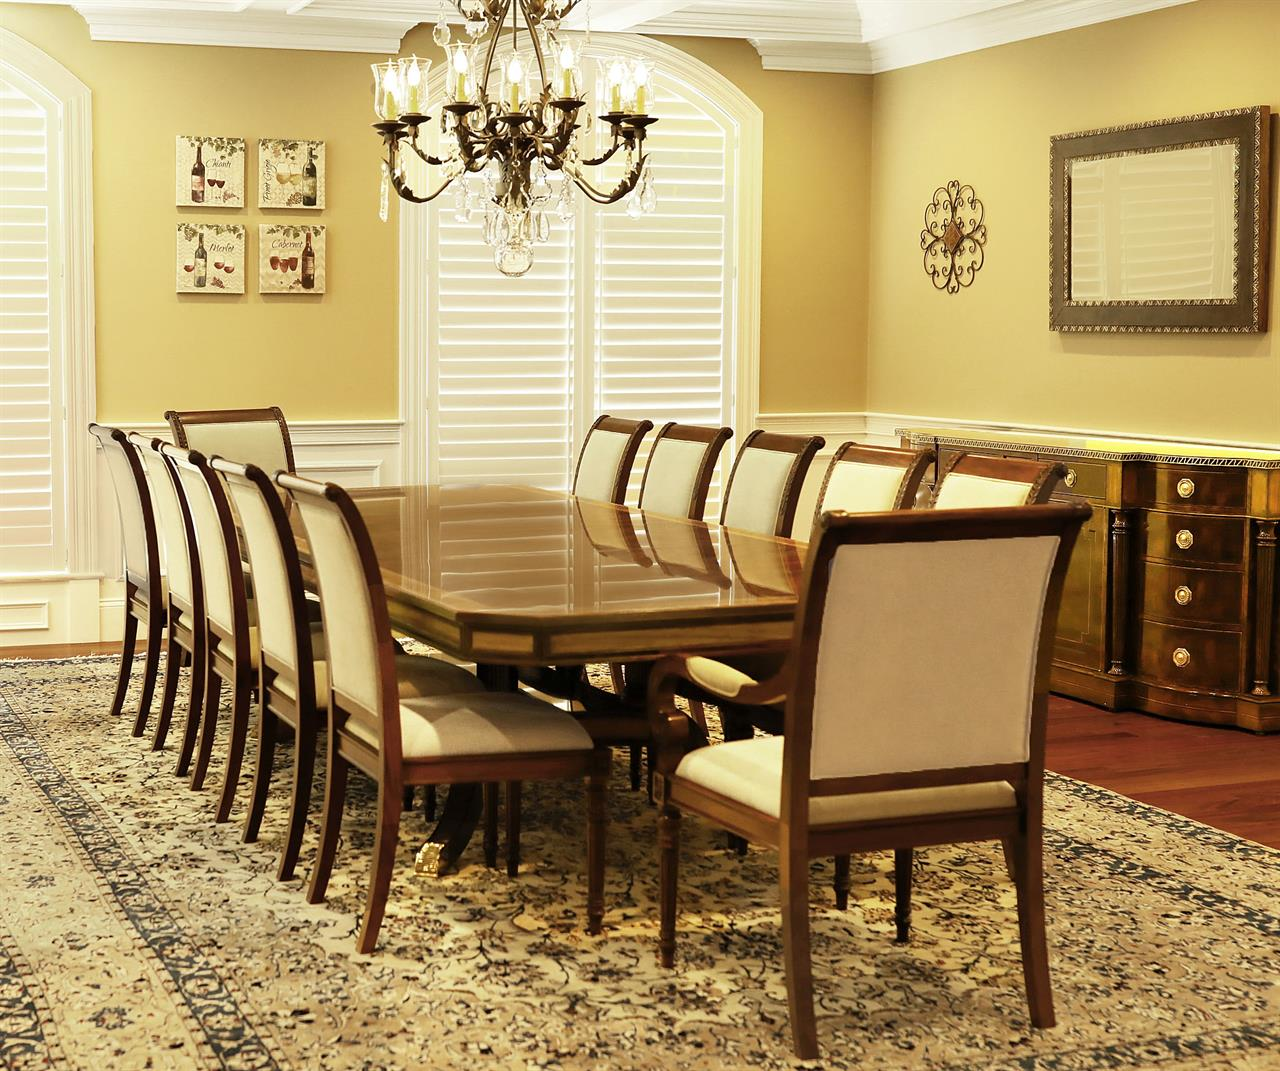 12 Foot Dining Room Tables: Large Mahogany Dining Table With Self Storing Leaves